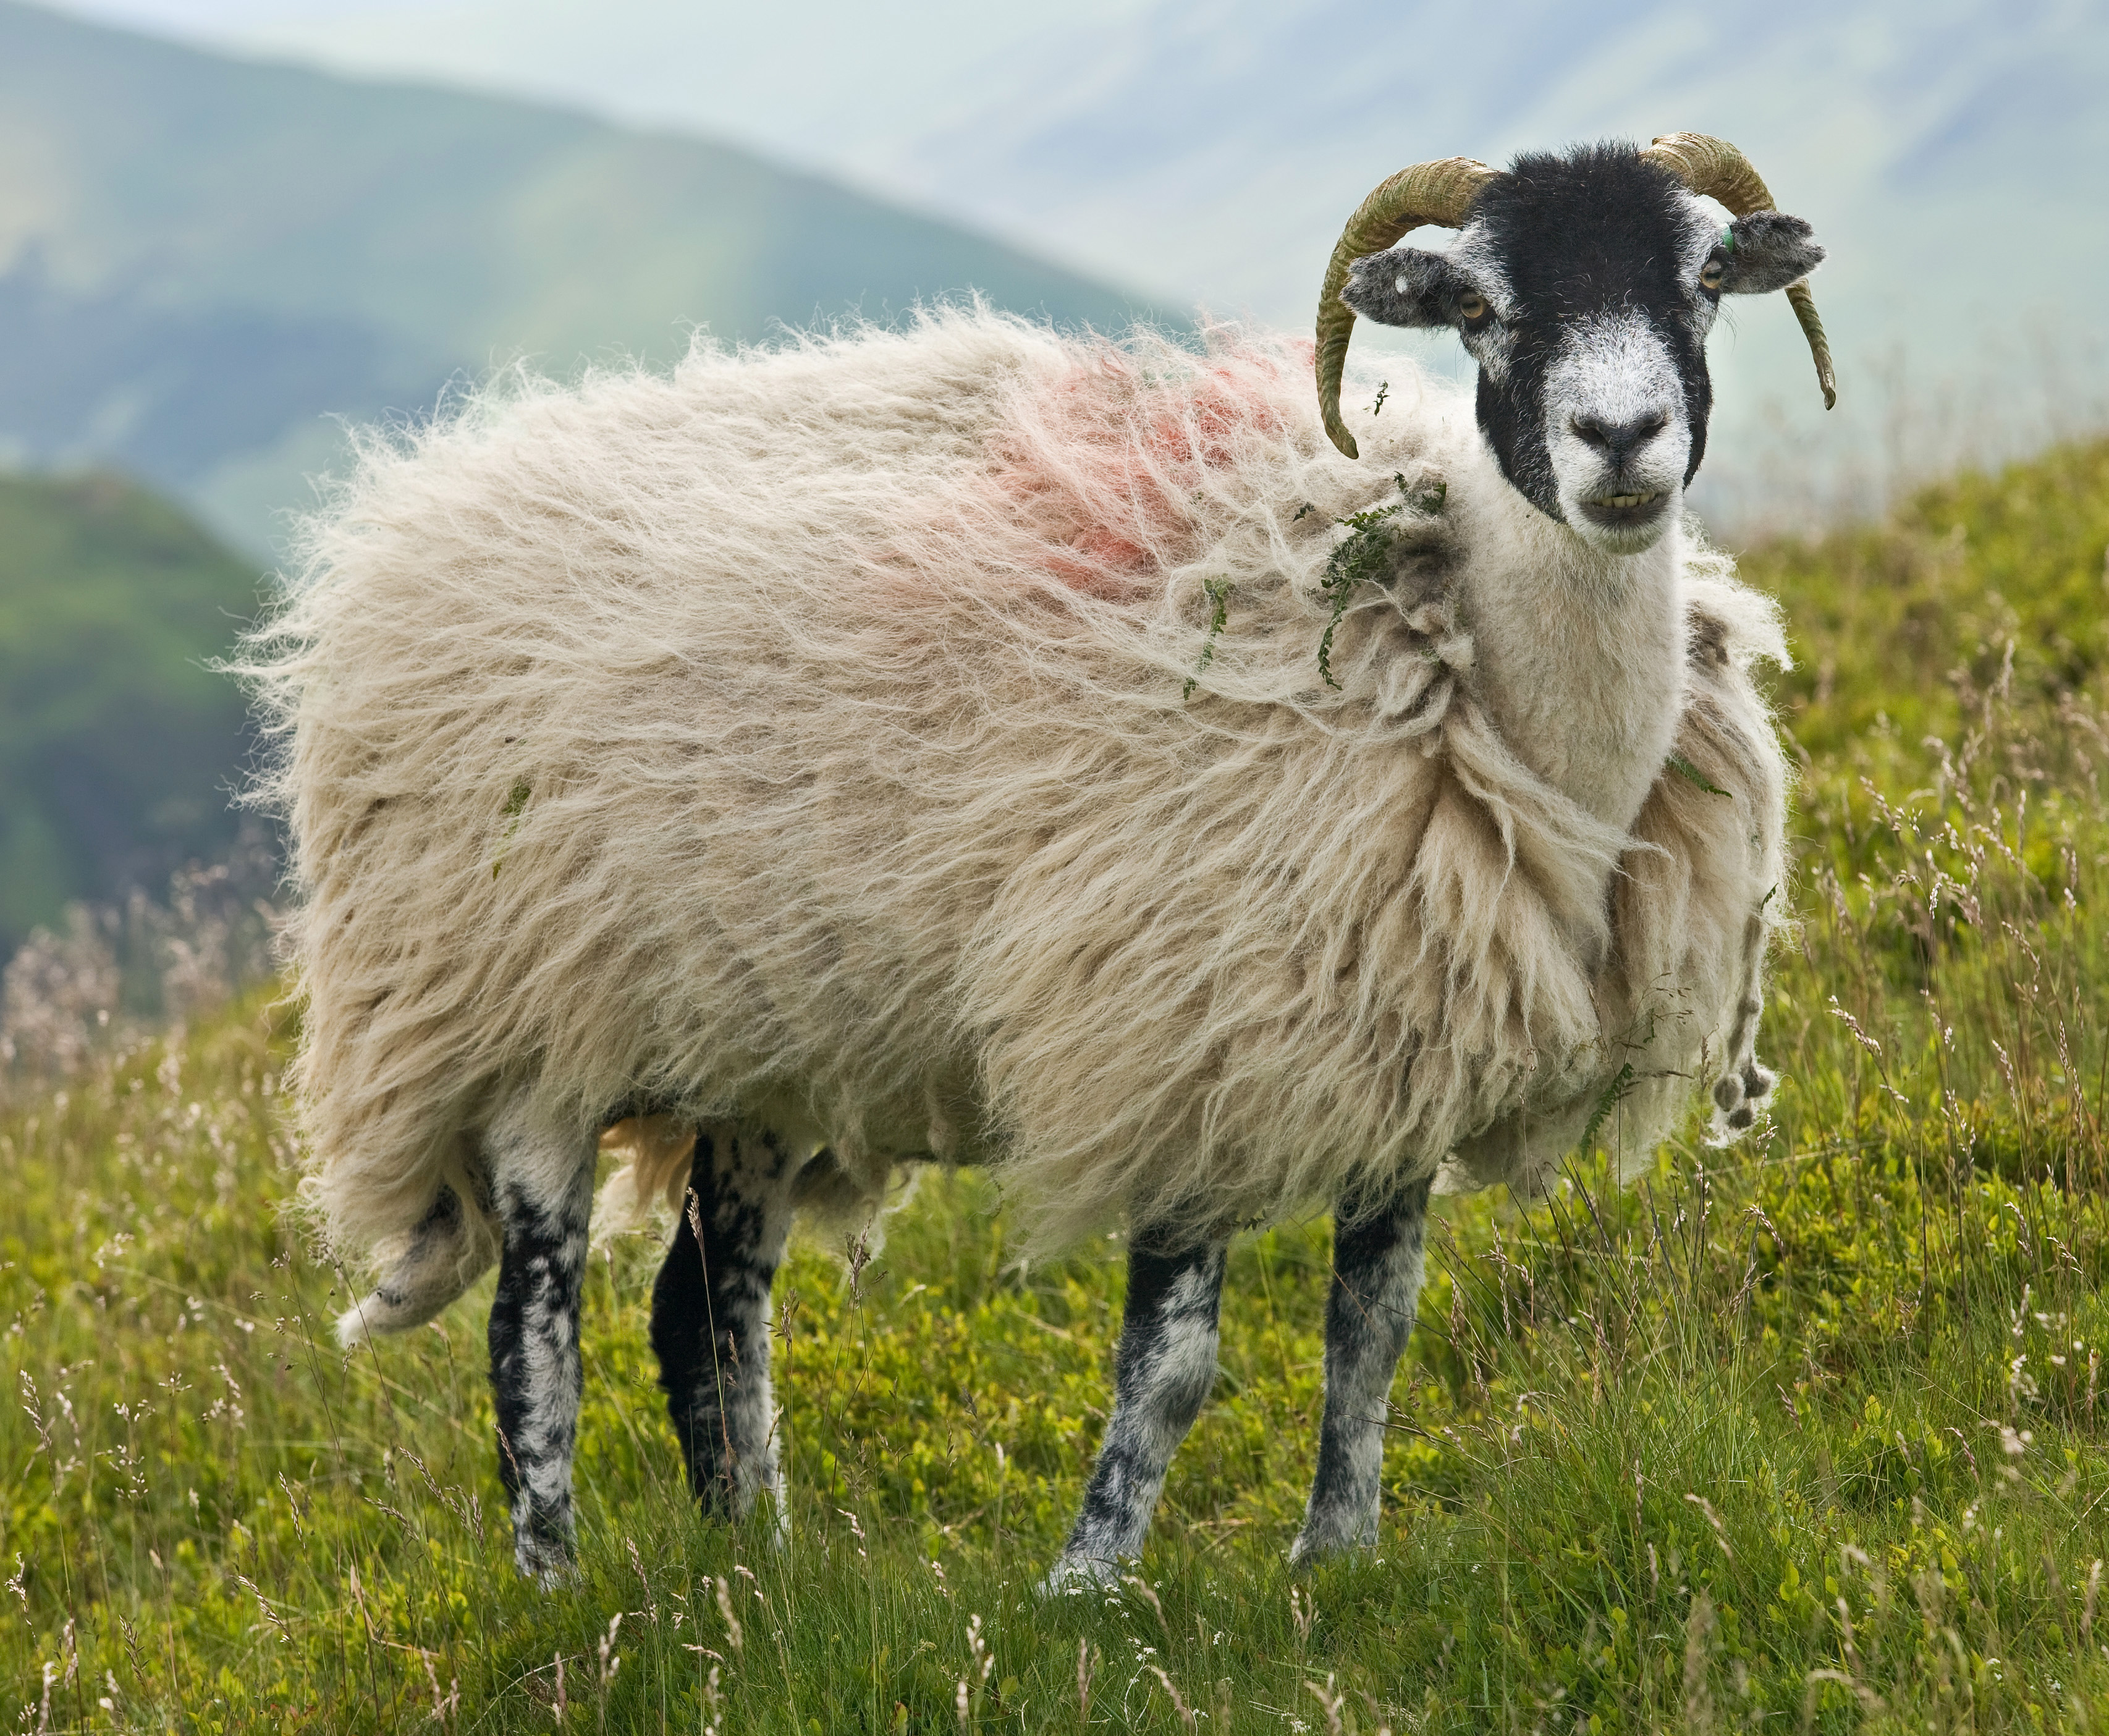 File:Swaledale Sheep, Lake District, England - June 2009 ...